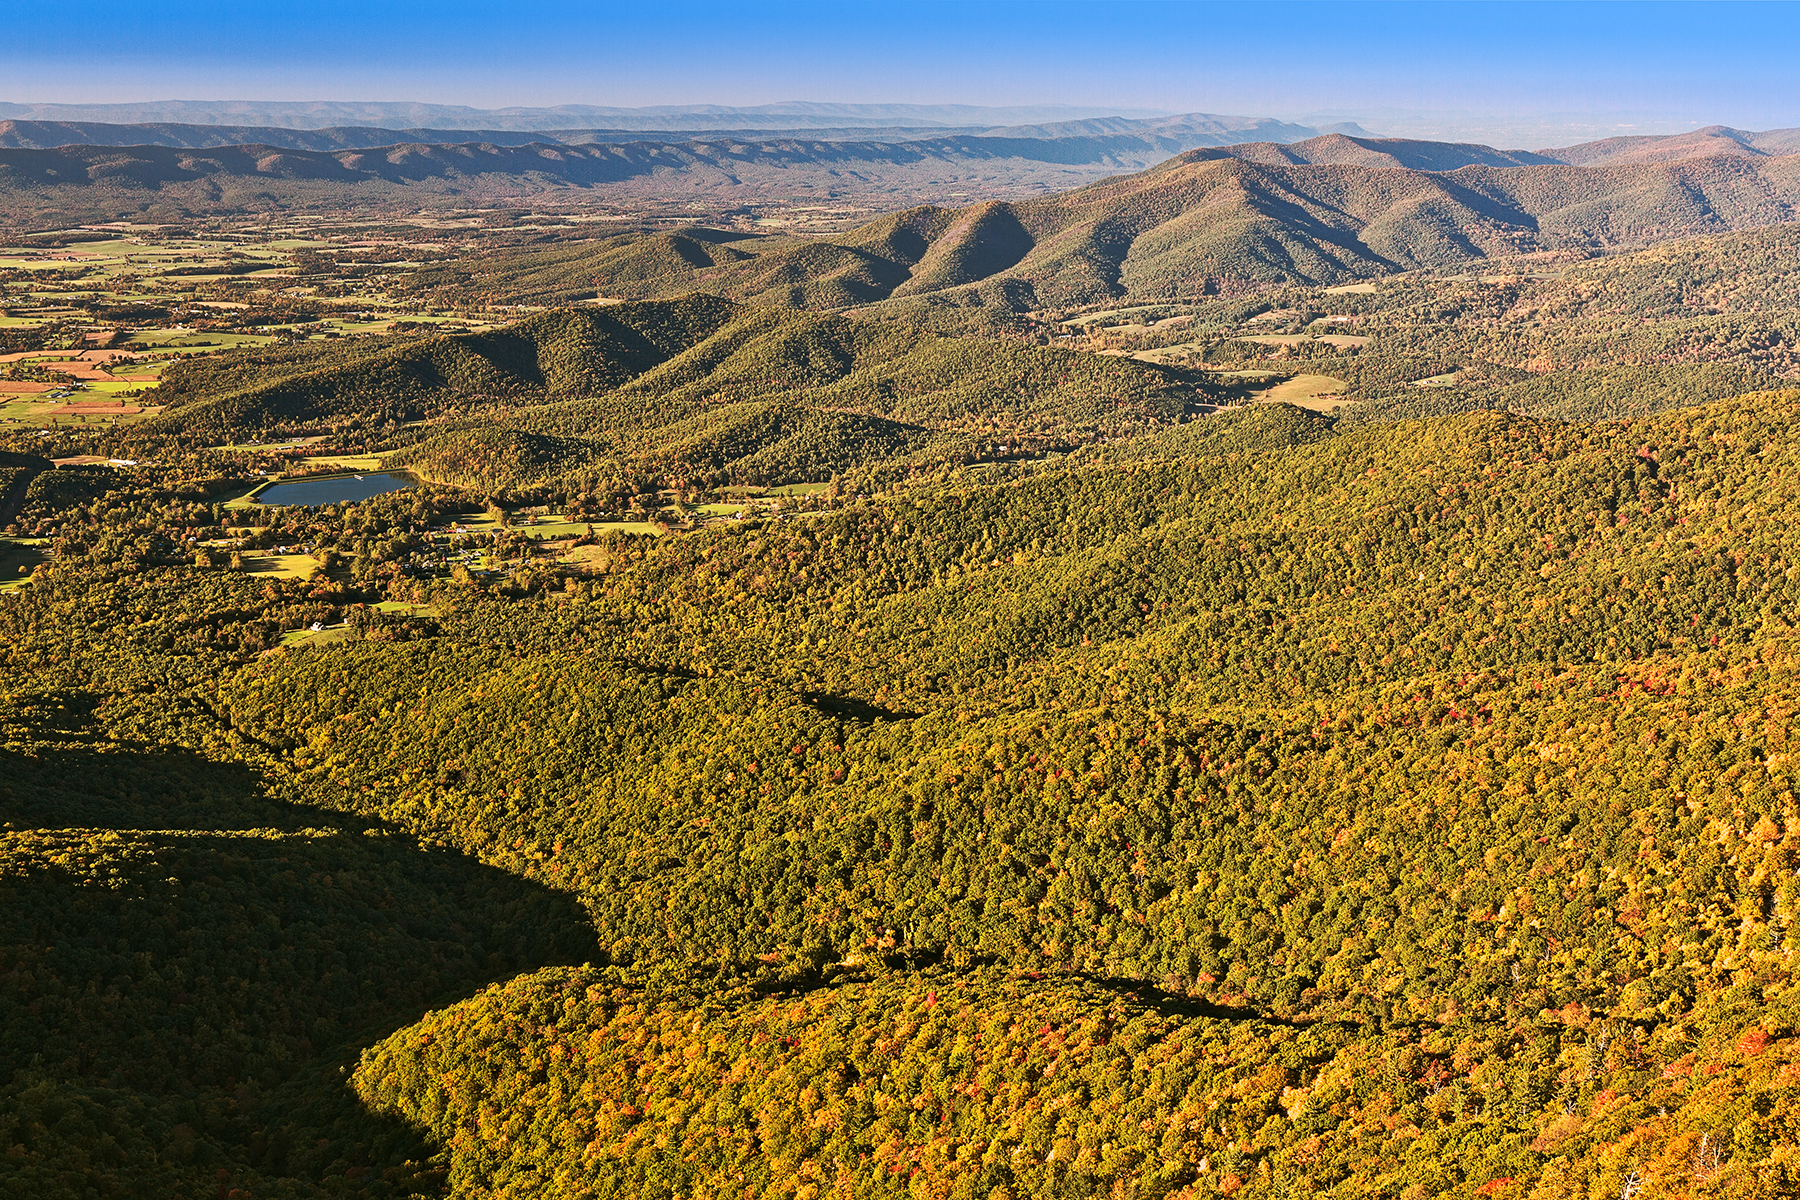 Shenandoah Overlook - HDR, America, Scenery, Shenandoah, Shadows, HQ Photo